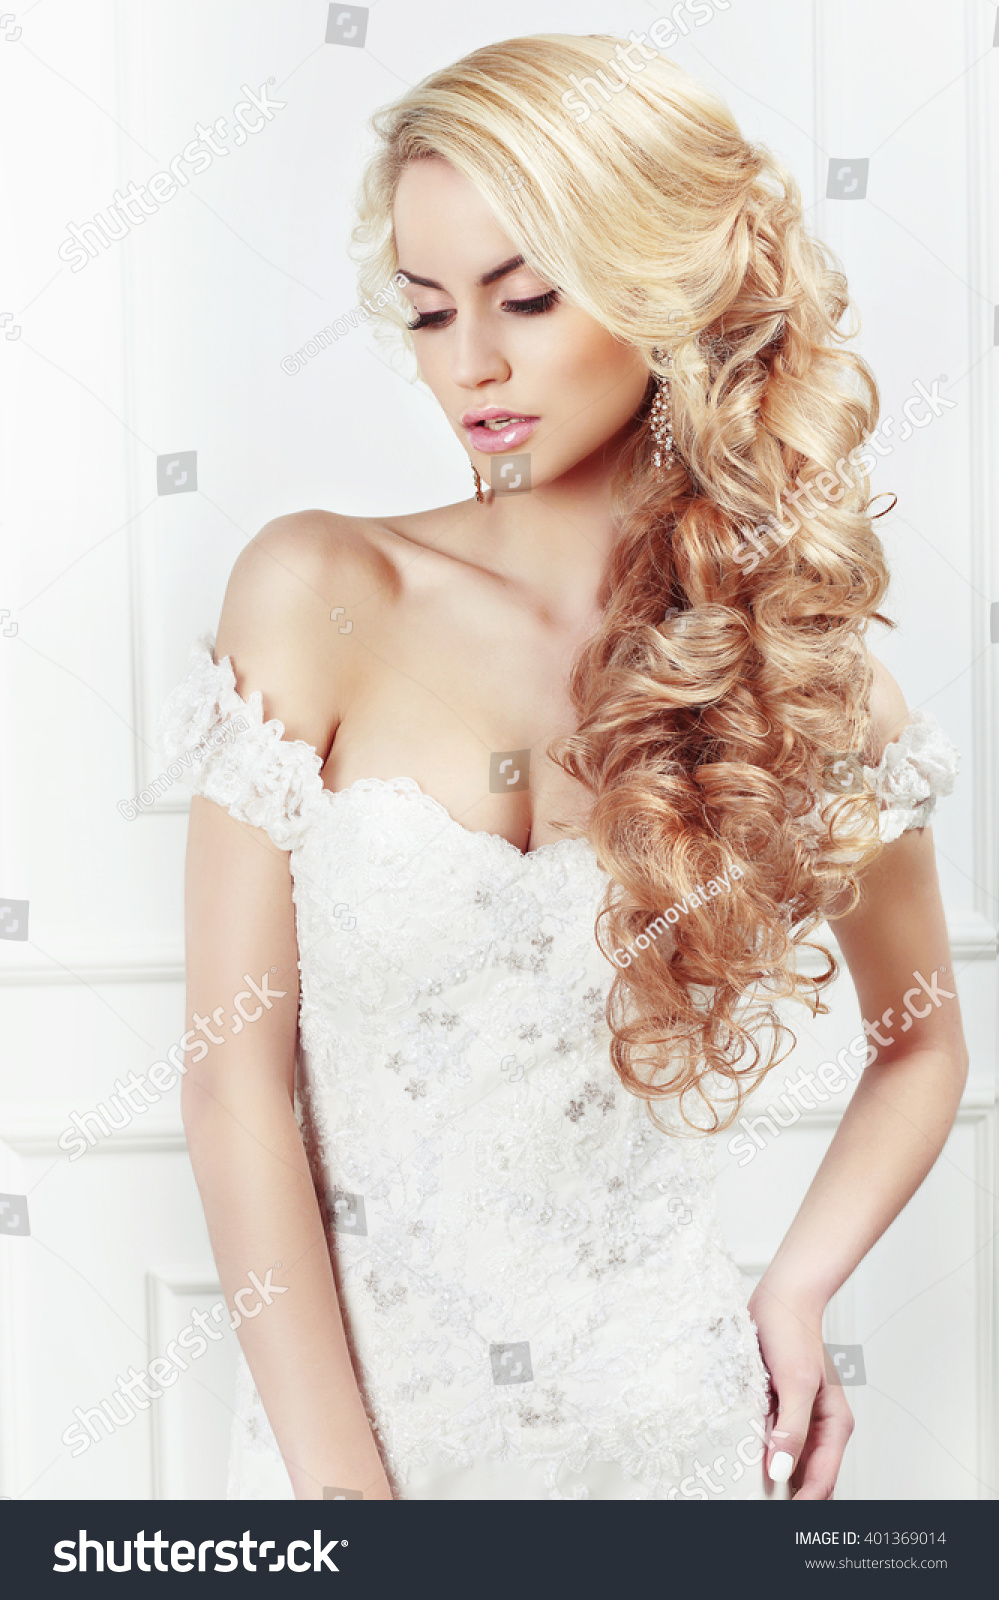 Wedding Hairstyle Portrait Bride Long Blonde Stock Photo 401369014 ...